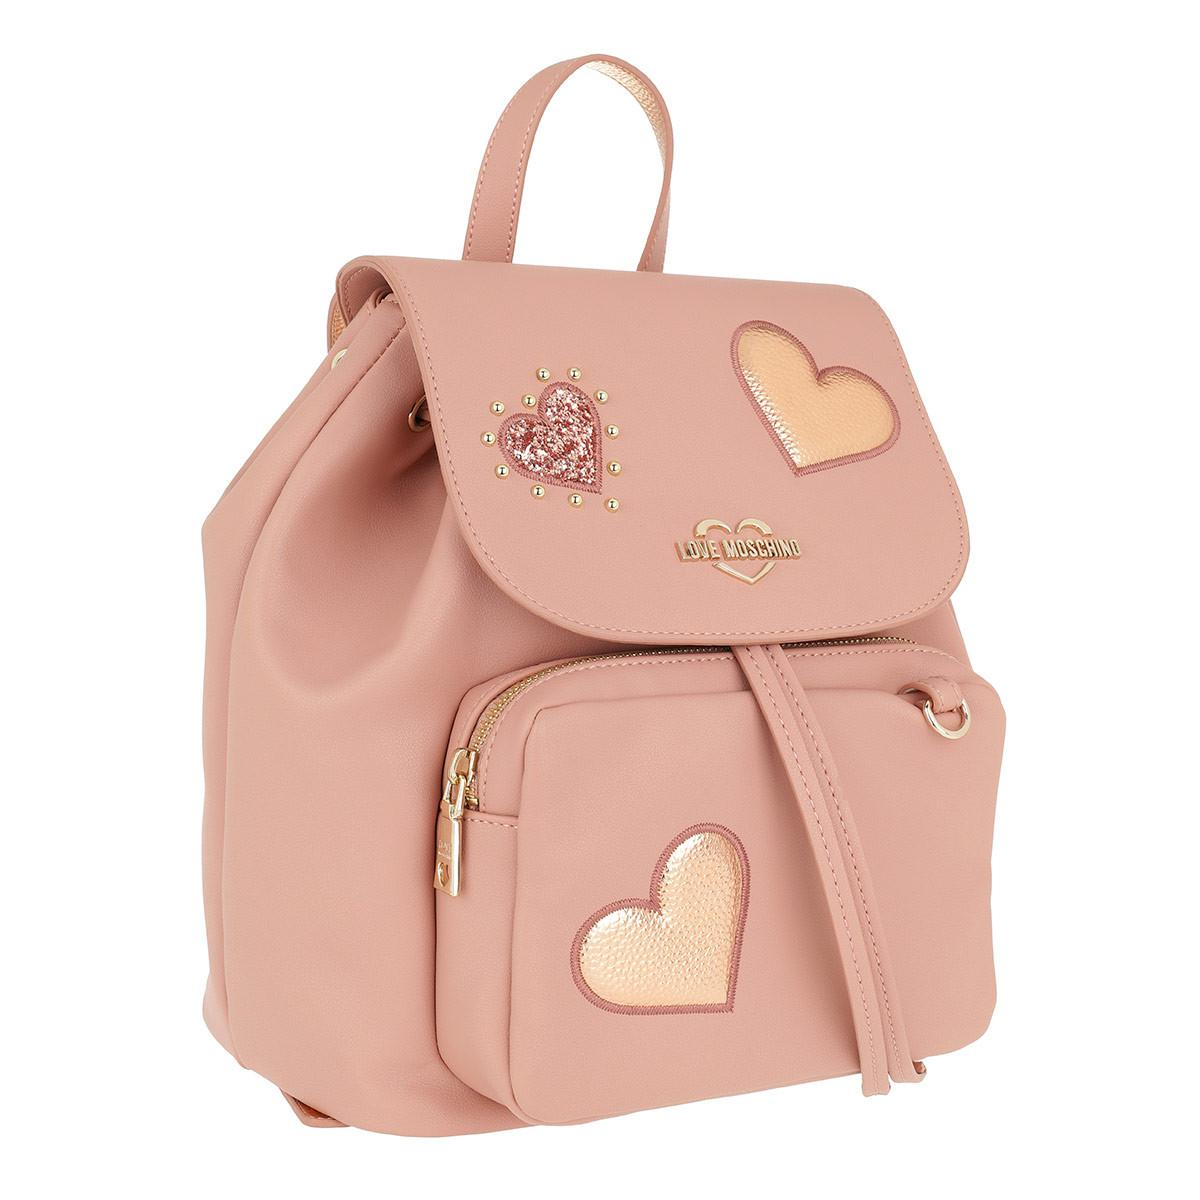 Love Moschino Charming Dolls Backpack Pink in Pink - Save 3% - Lyst 1c8ae4e9a595d